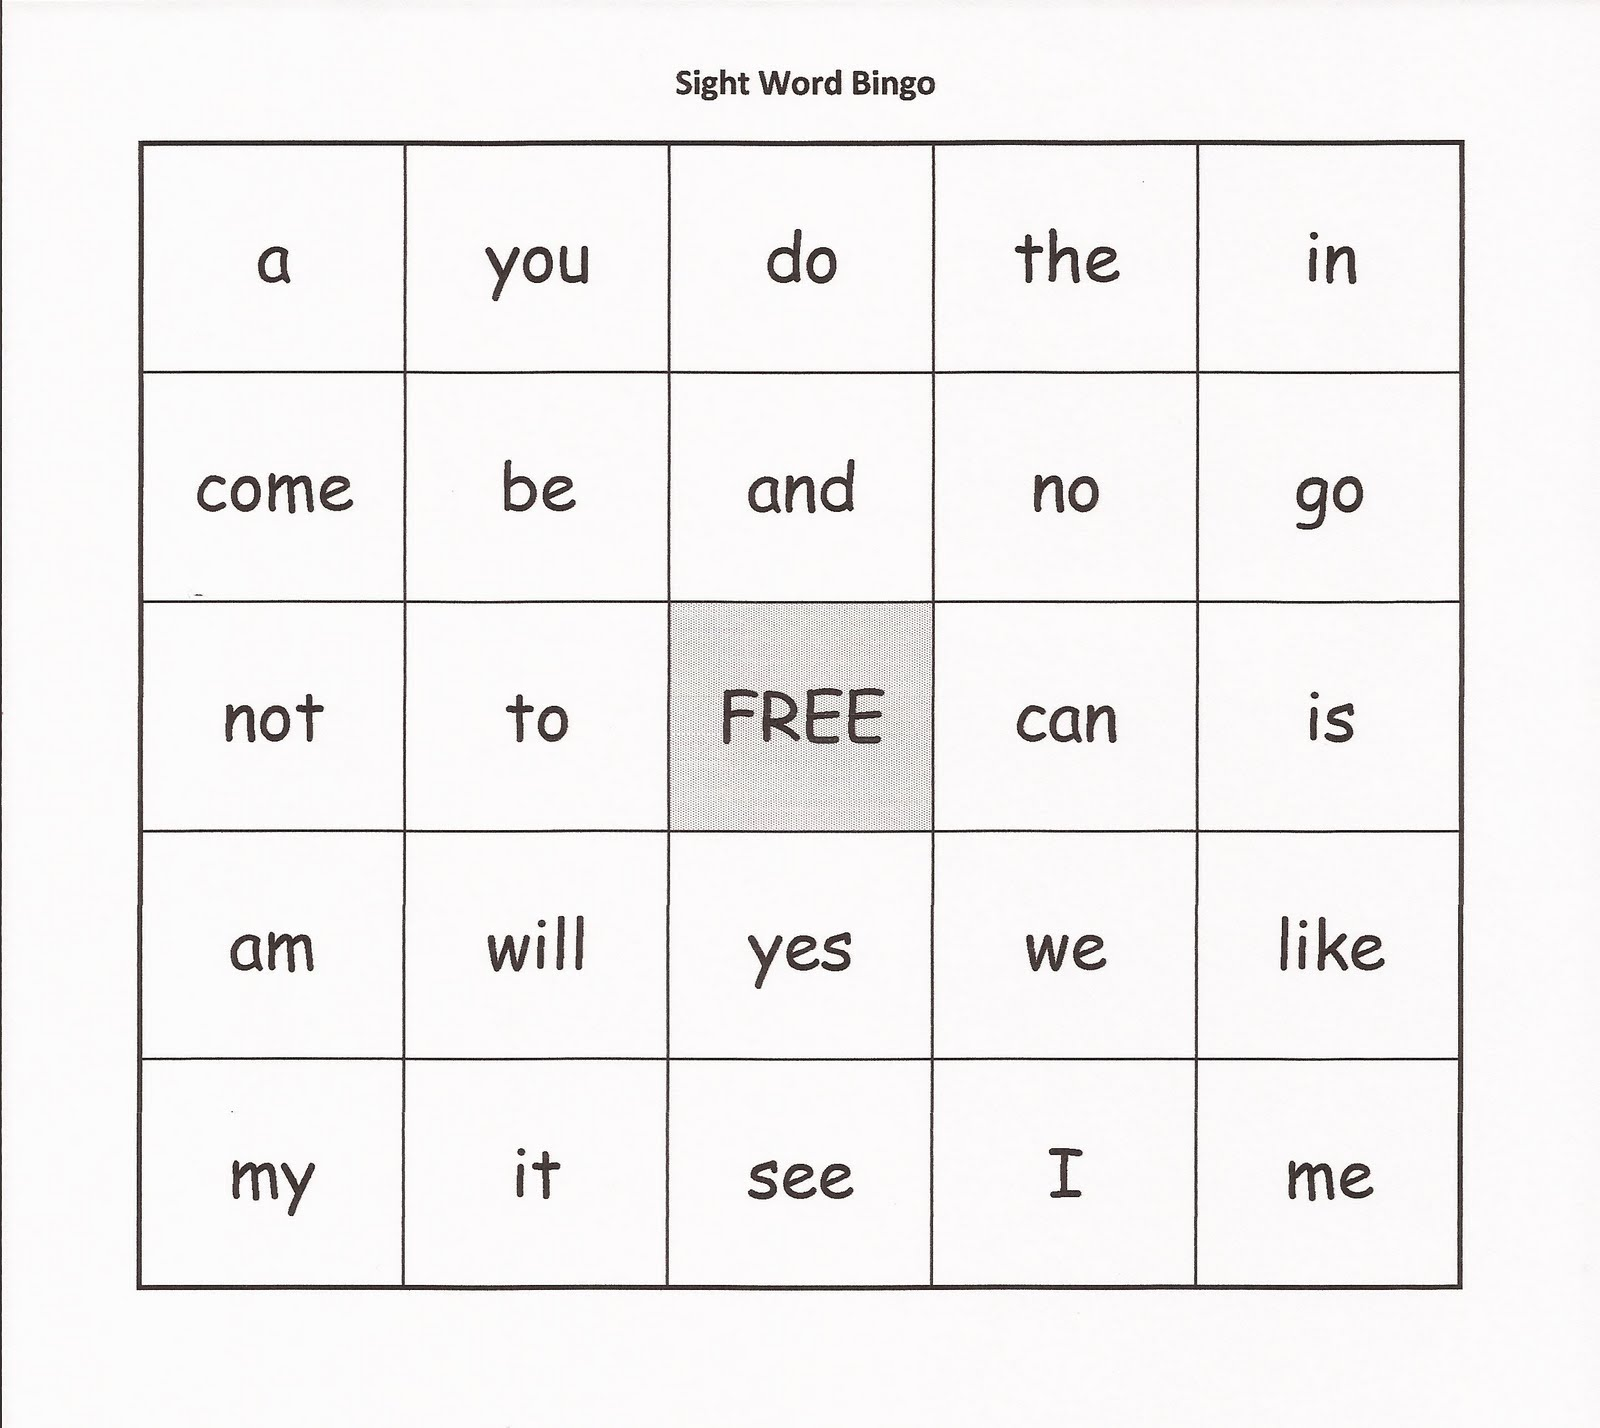 was Sight  sight book word printable Bingo Word